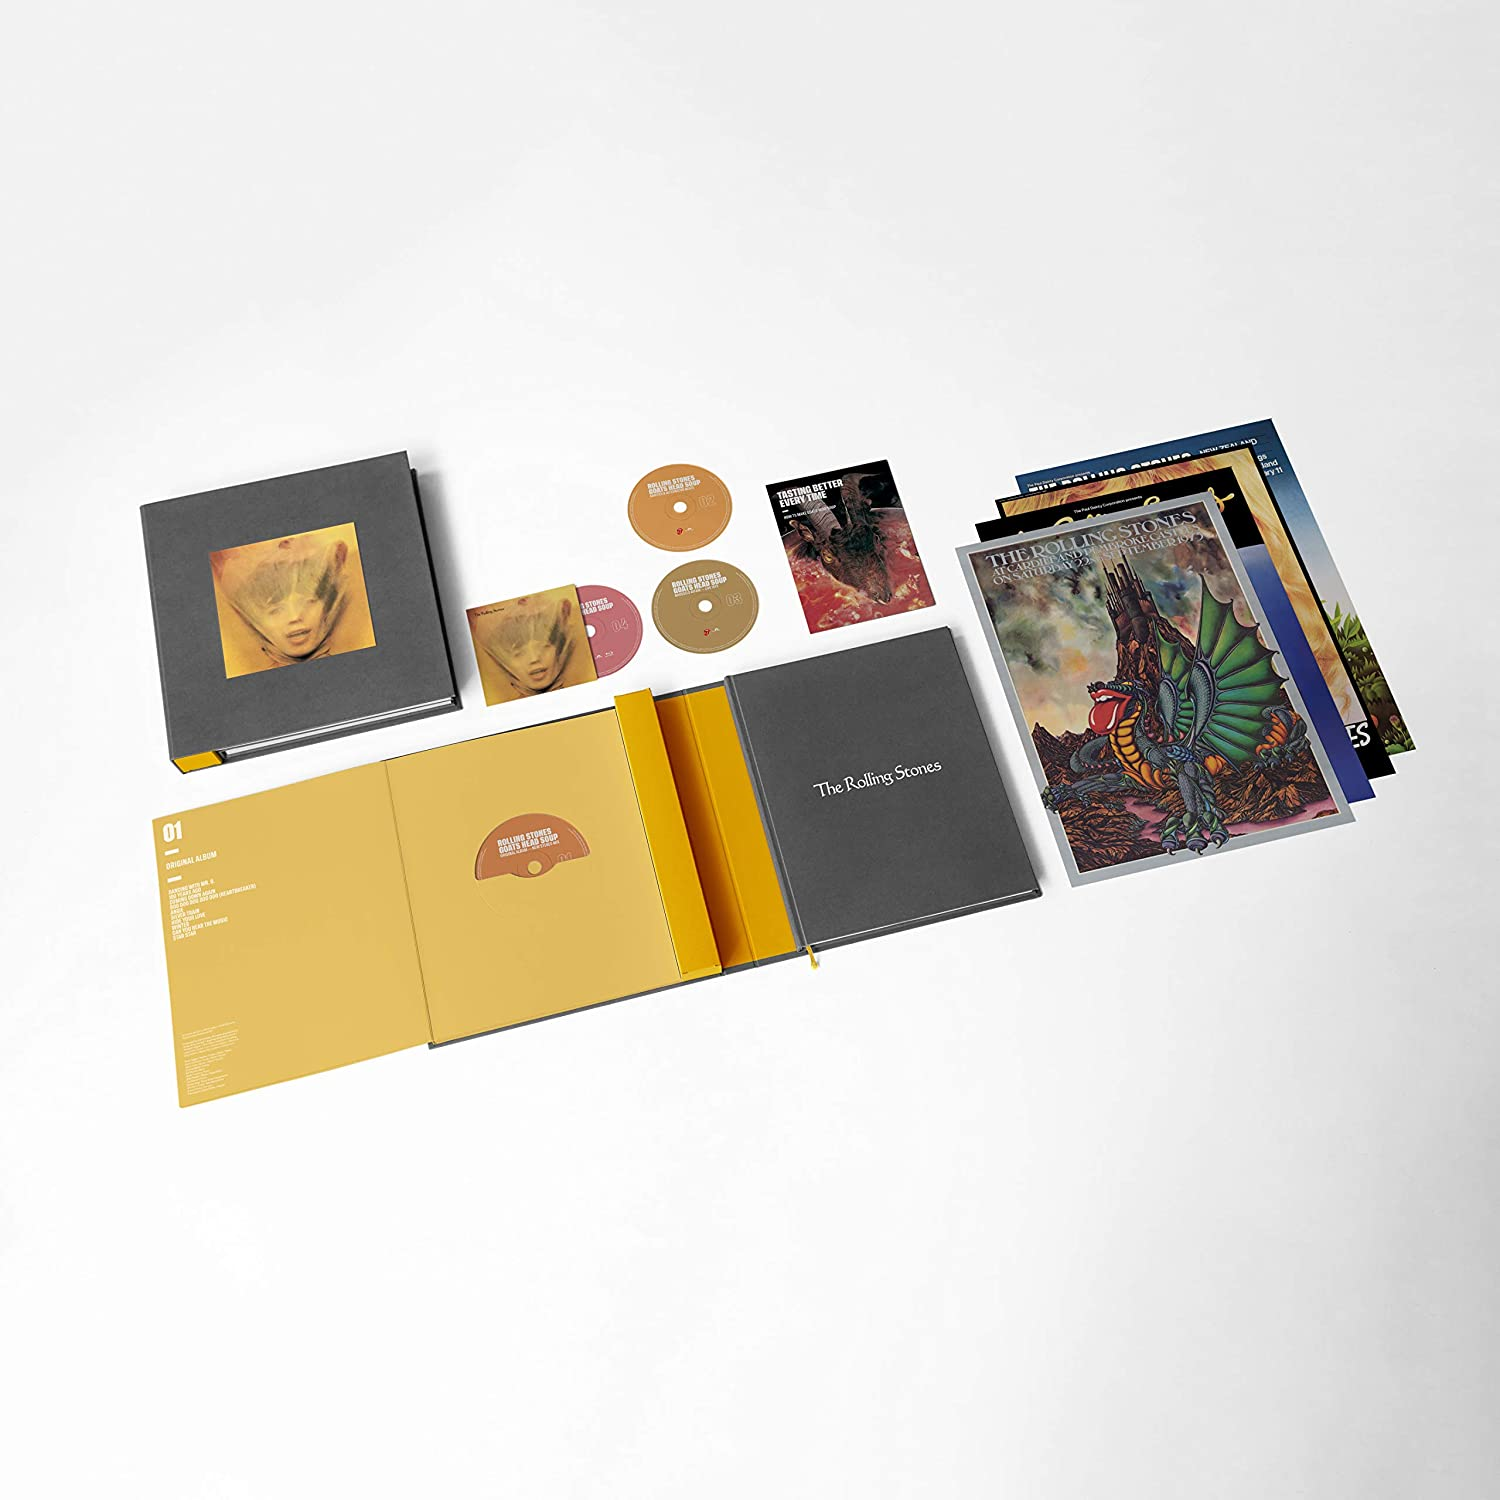 Rolling Stones, The - Goats Head Soup [3CD+BluRay] (Super Deluxe Box Set, 120 pg book, 4 x 1973 reproduction tour posters, rarities & alternative mixes feat. 3 previously unreleased tracks) - Urban Vinyl | Records, Headphones, and more.